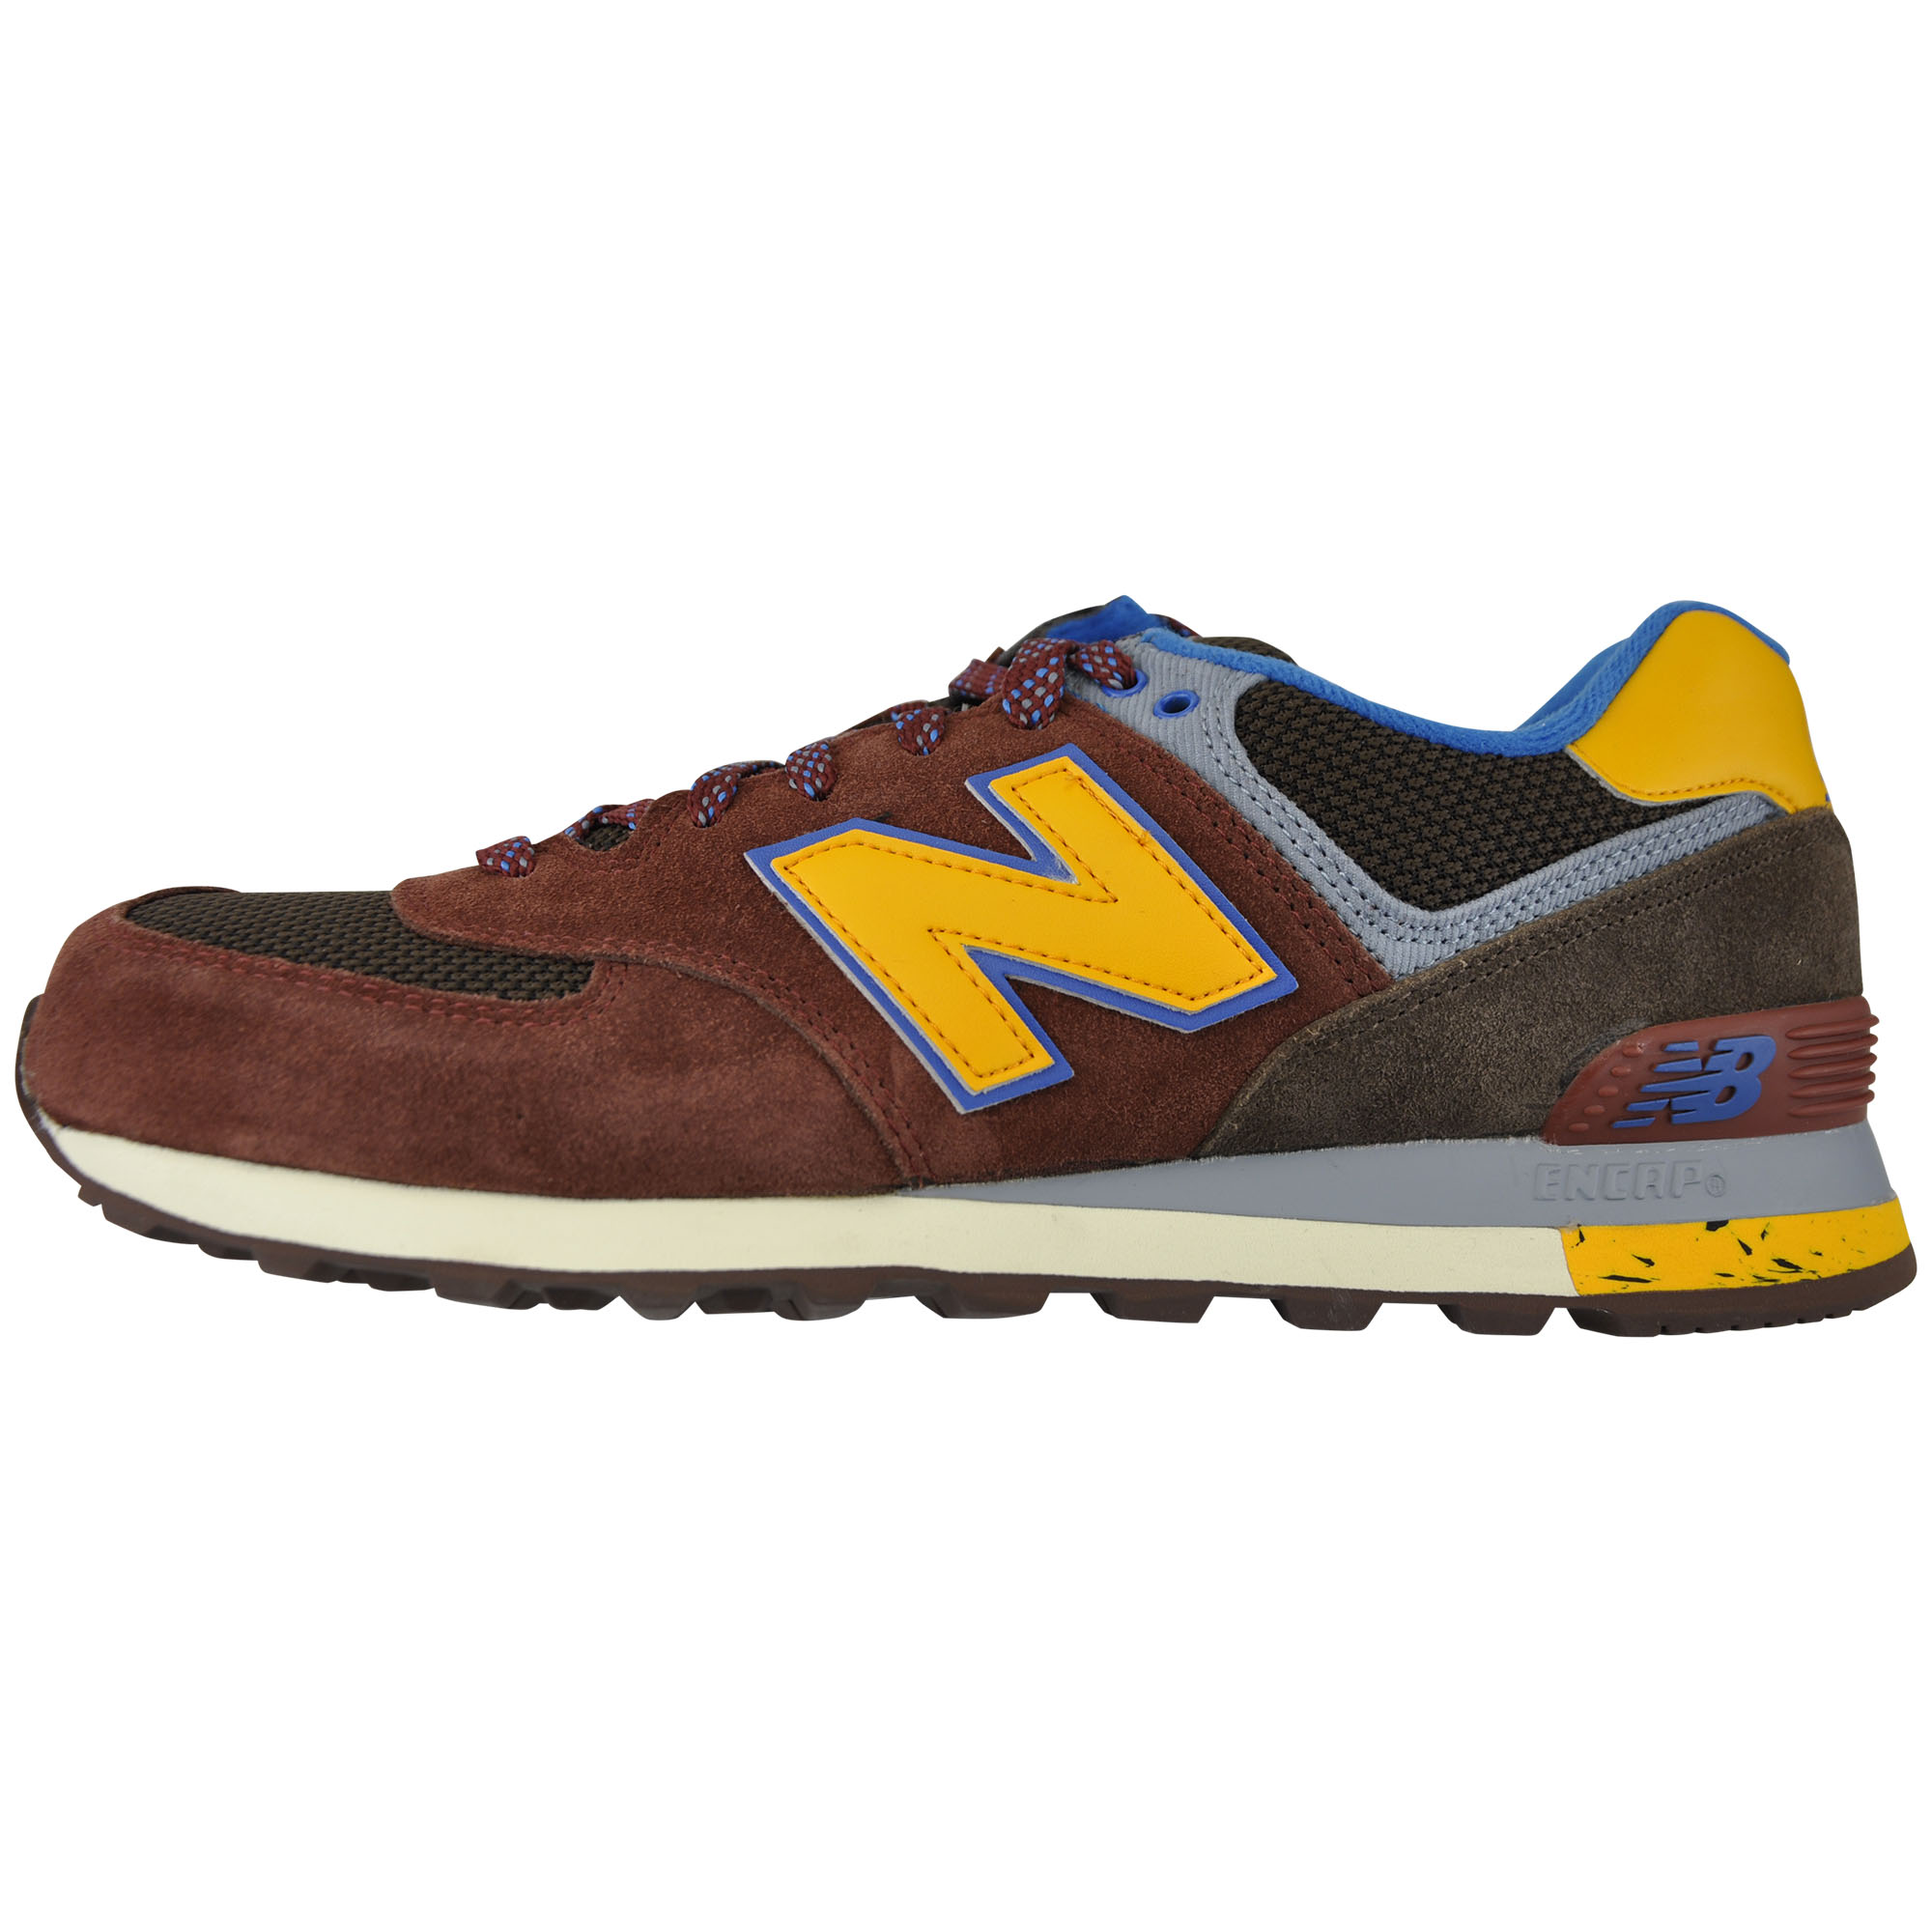 new balance ml574 casual shoes sport sneakers running